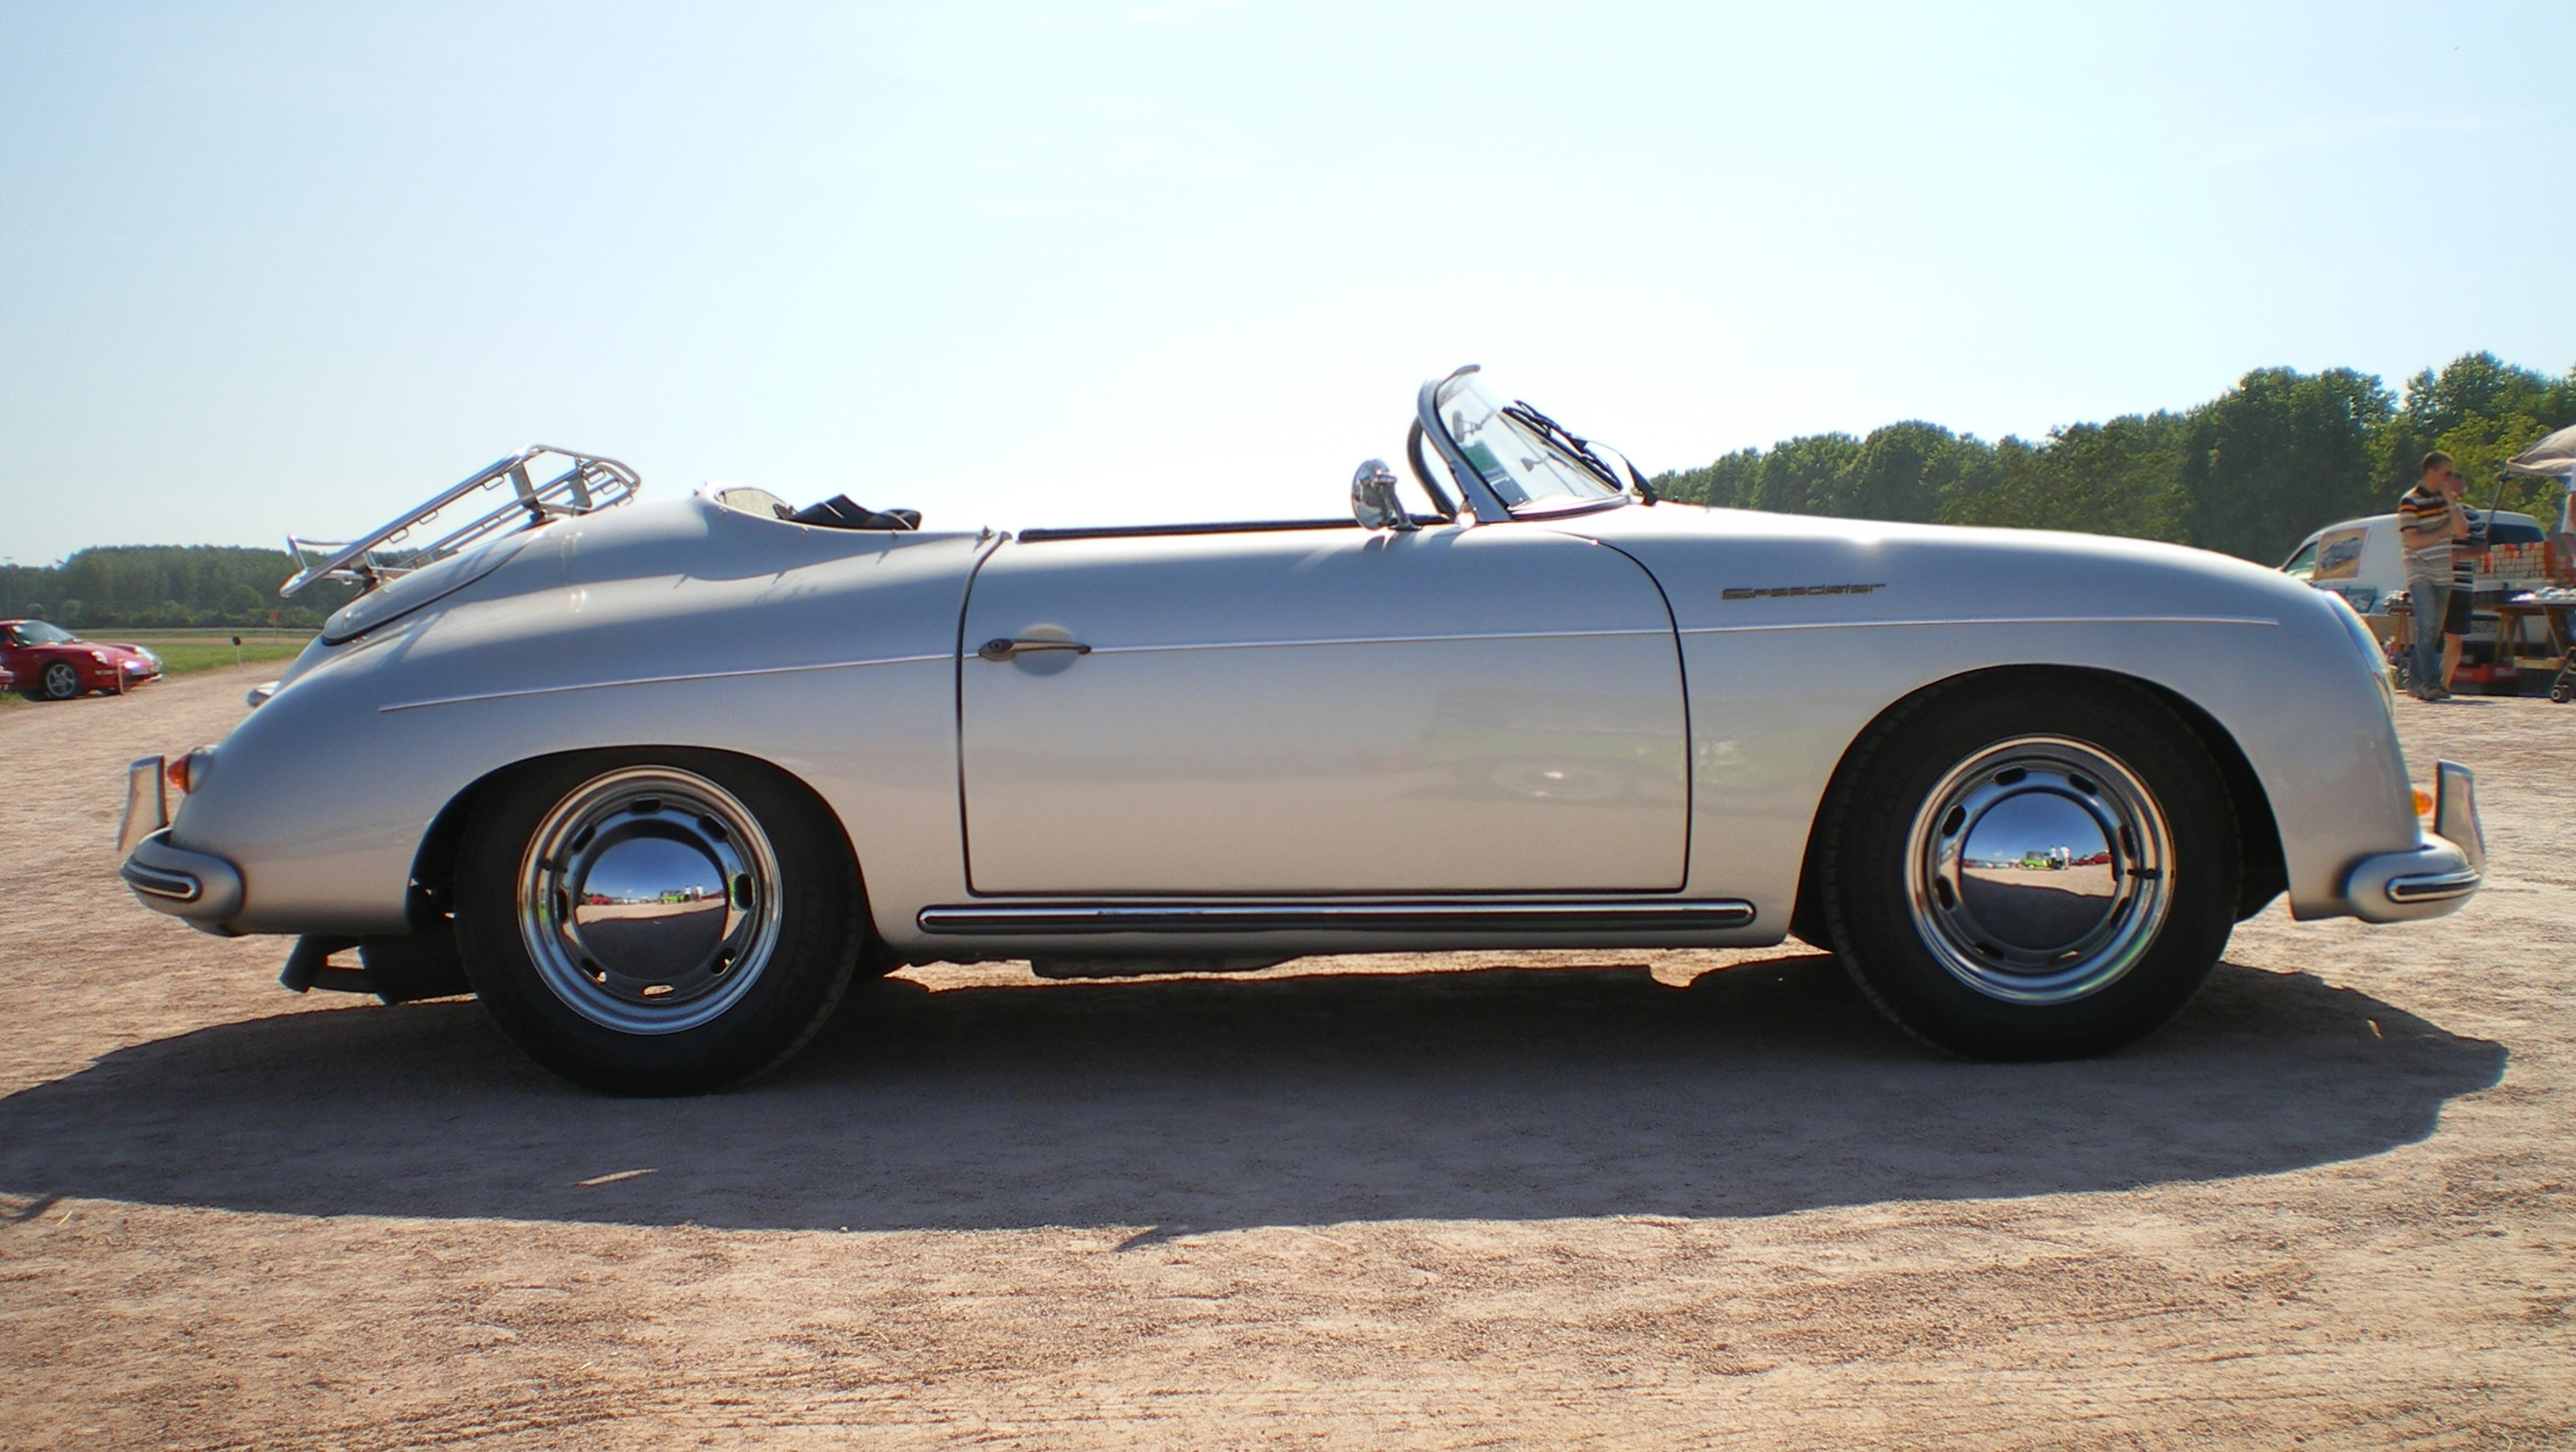 The timeless Porsche 356 (Speedster) is an iconic car with equal parts style and performance